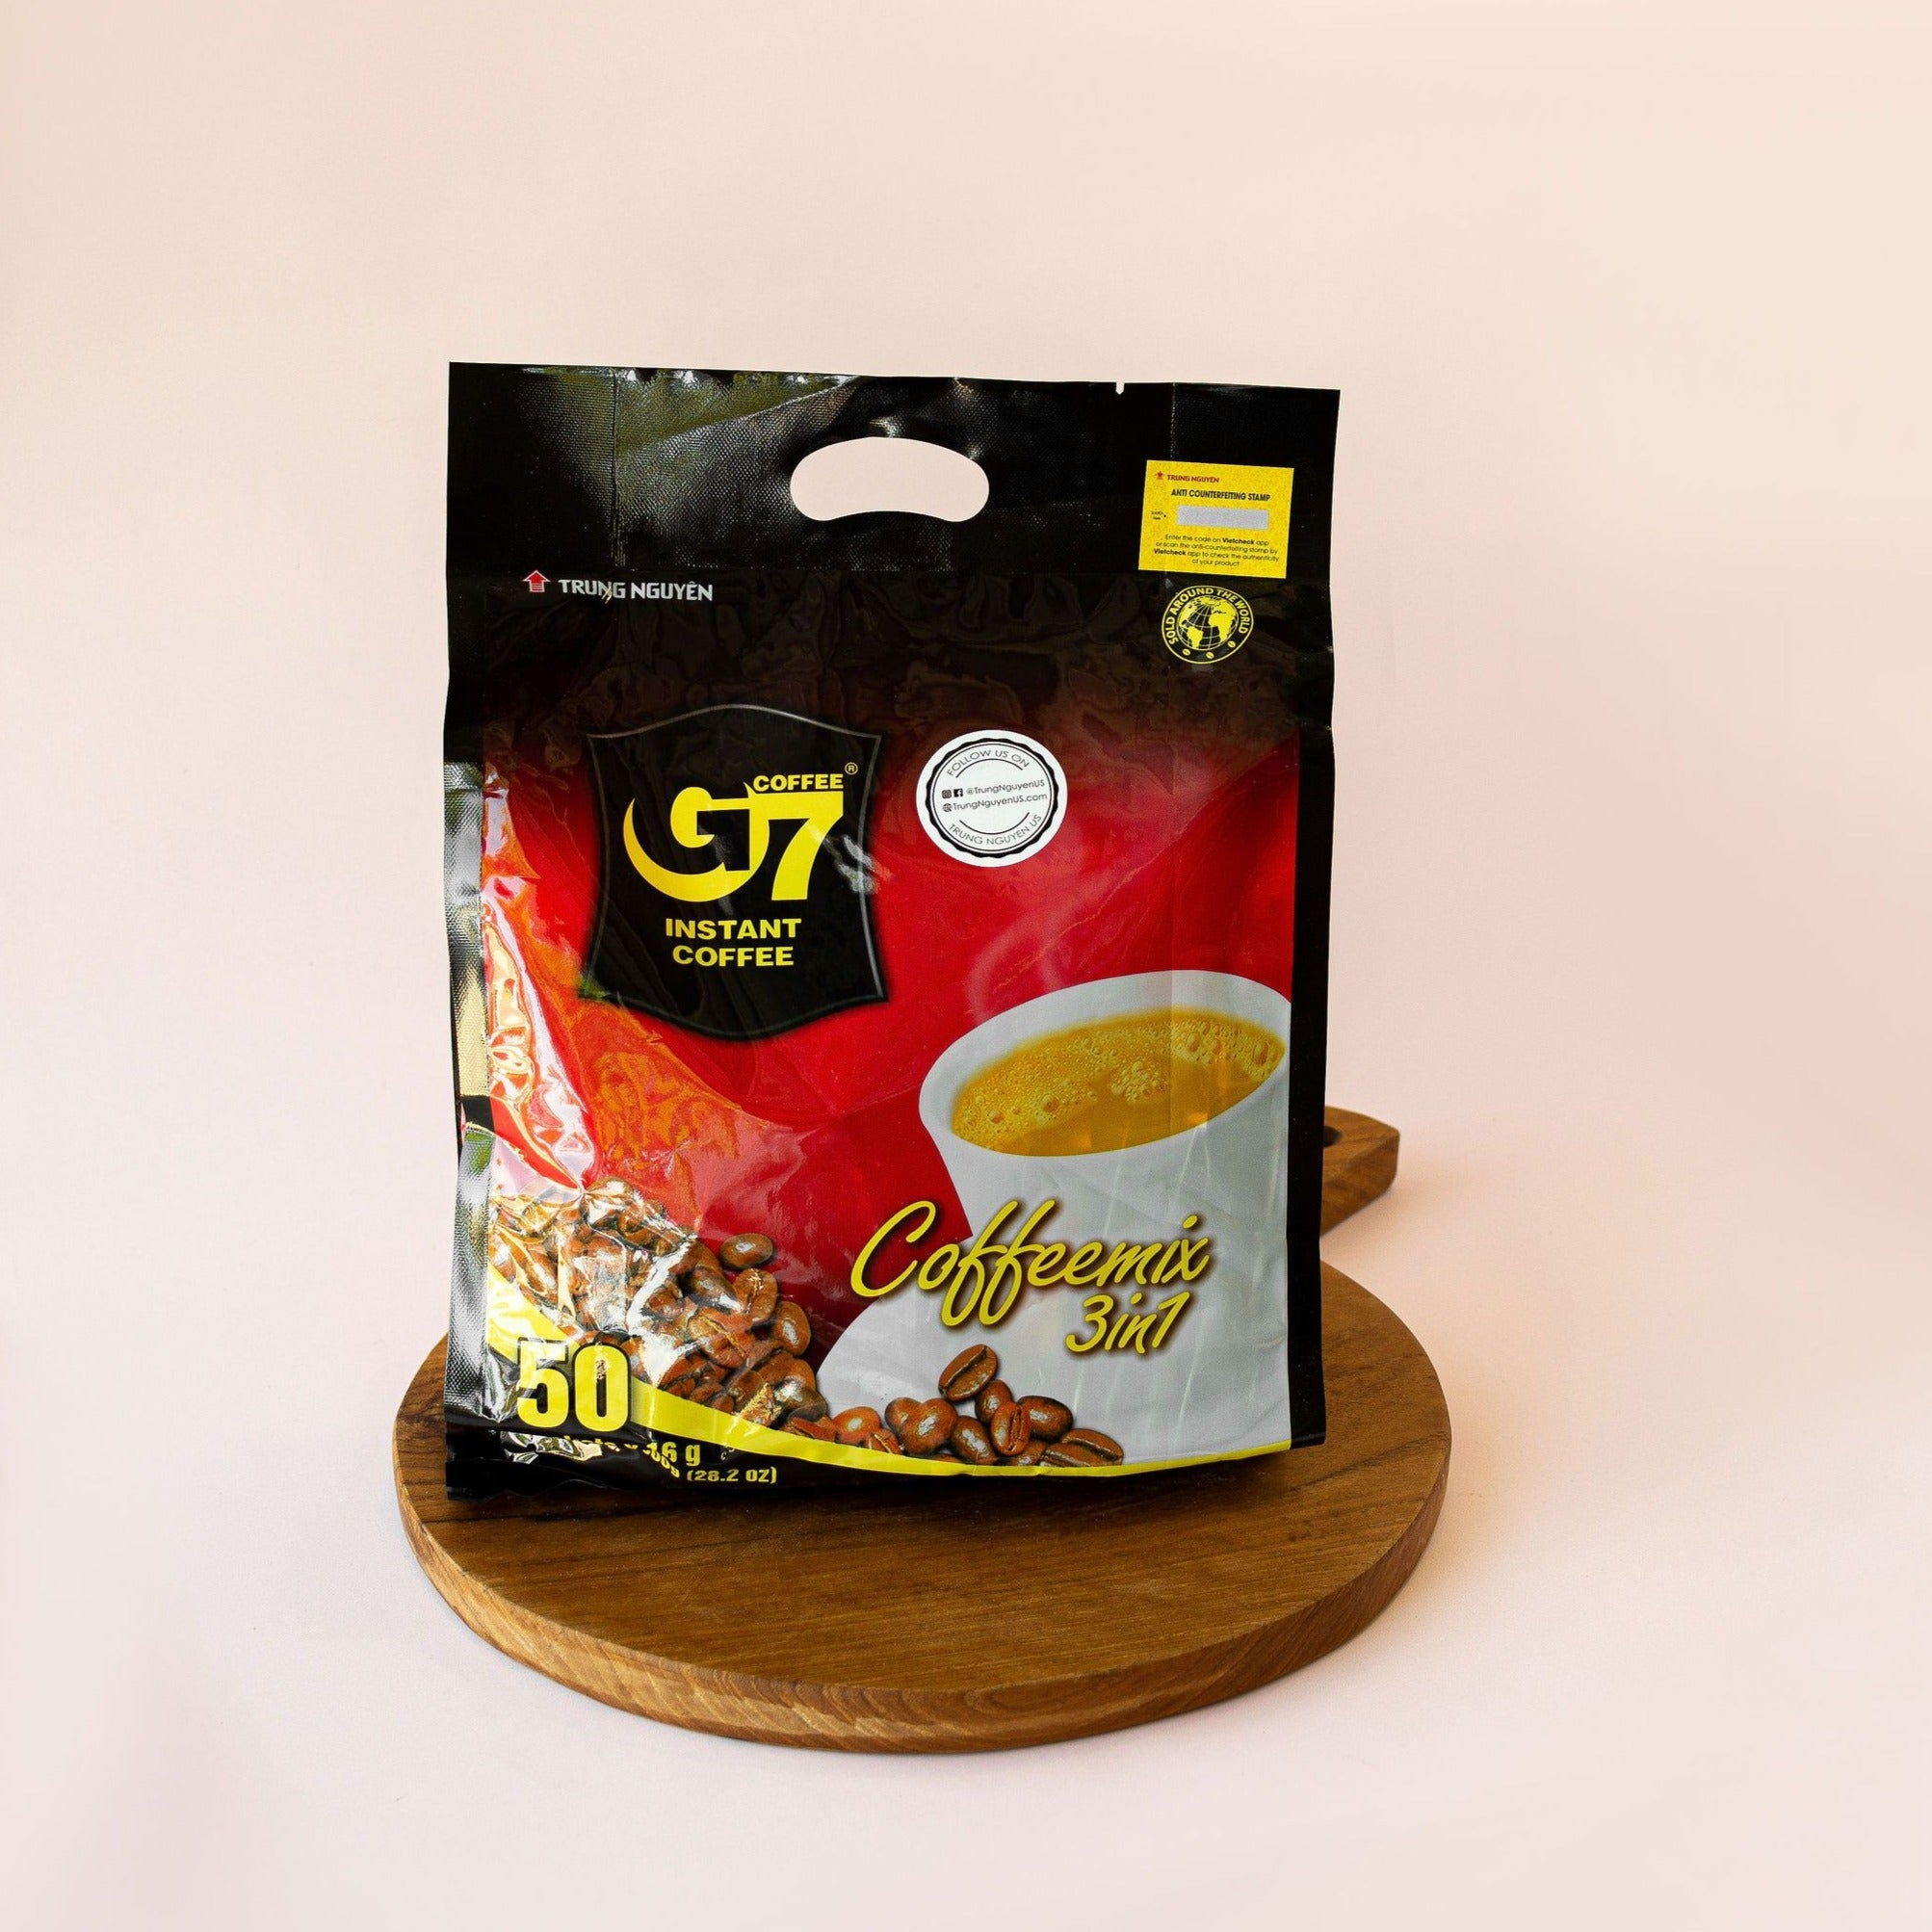 Trung Nguyen Vietnamese coffee G7 3 in 1 Instant Coffee - (Various Sizes)